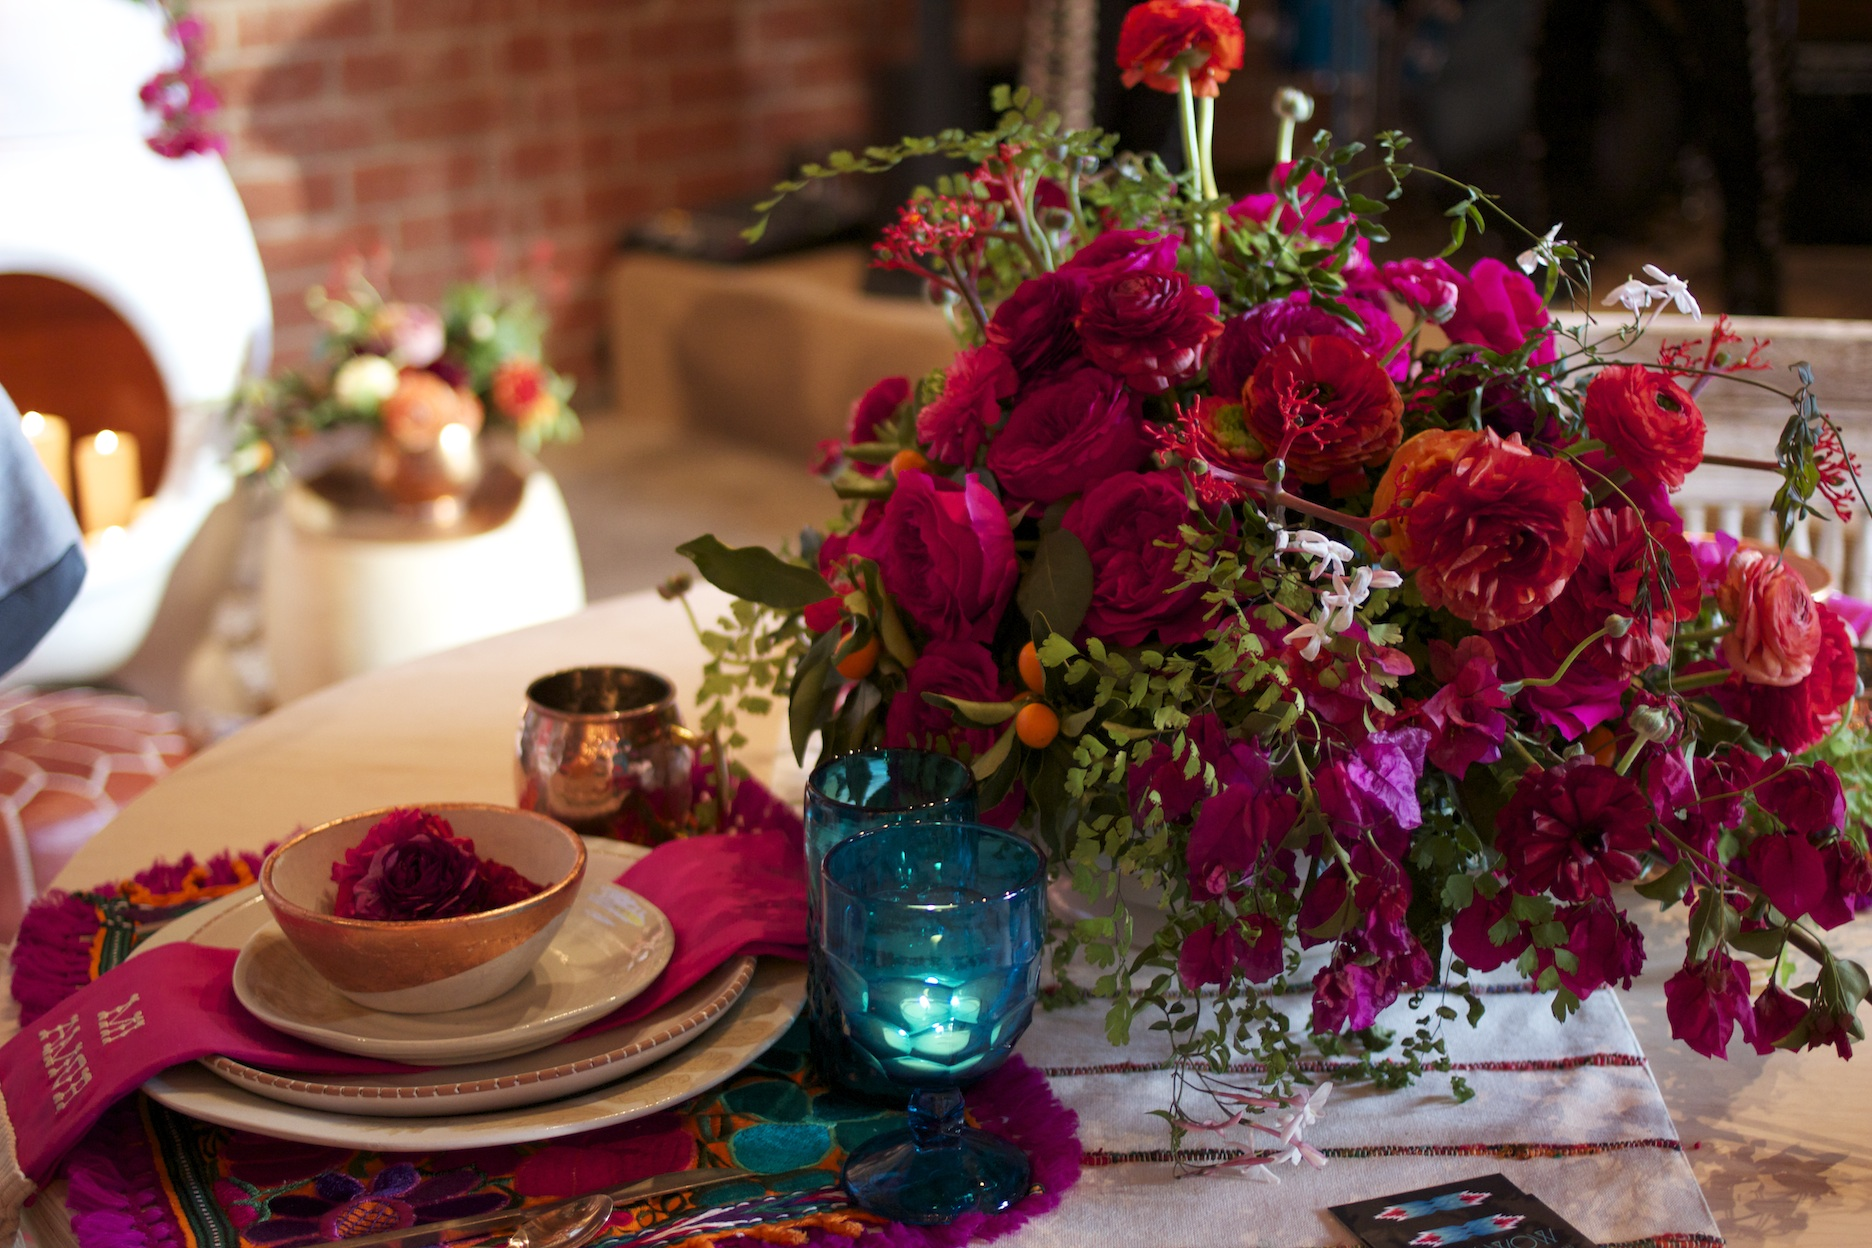 Loving all the bright colors! Design by  Pow Wow  and florals by  Honey and Poppies